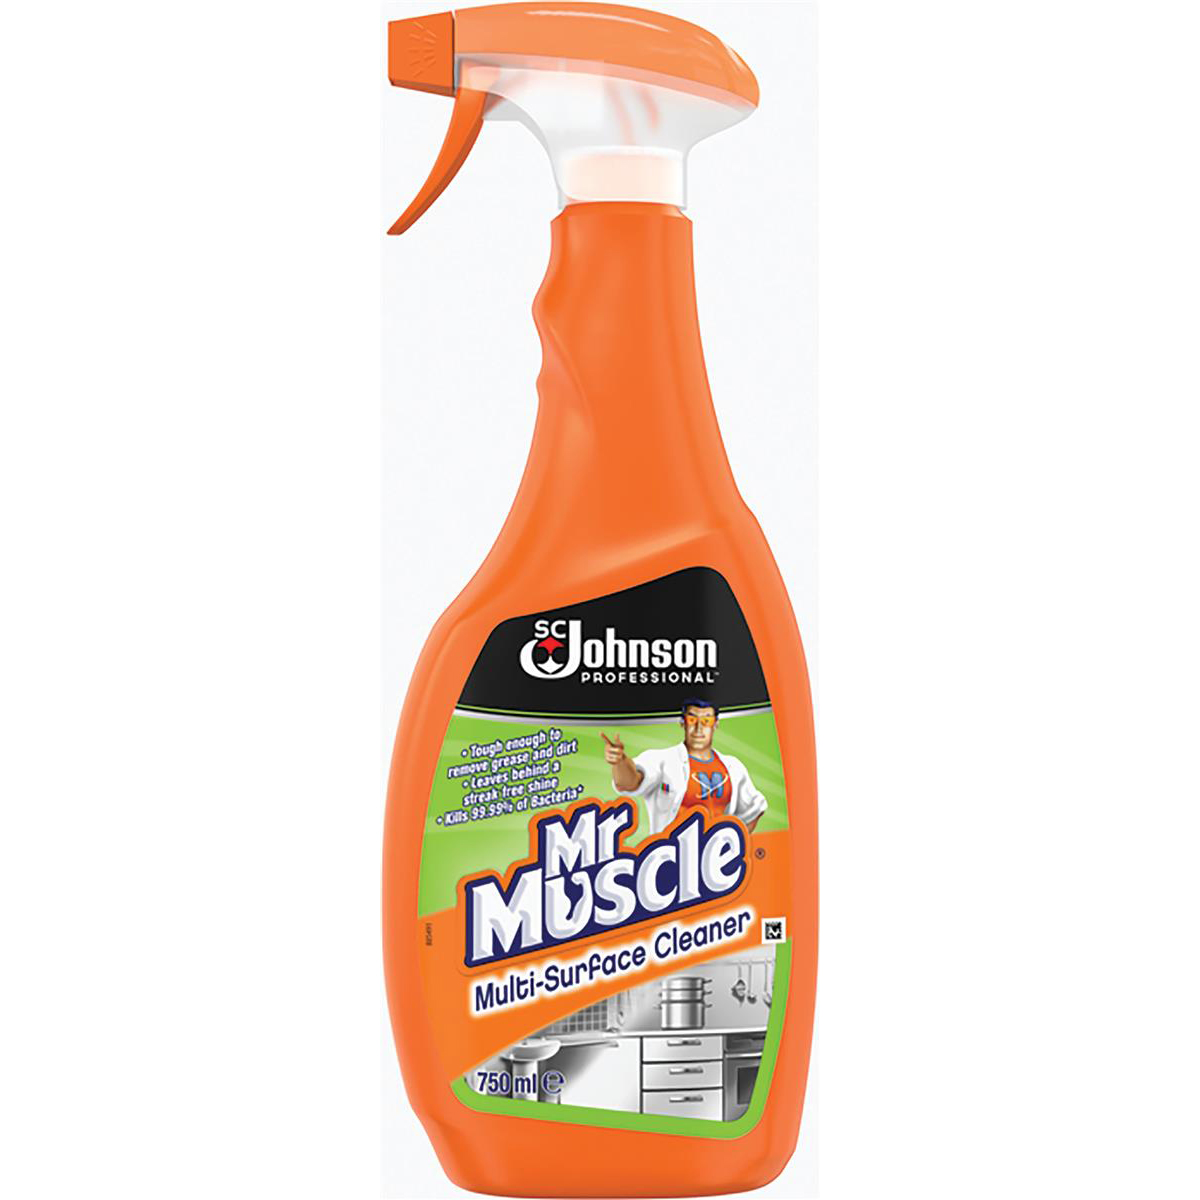 Multipurpose Cleaning Mr Muscle Multi-Purpose Surface Cleaner 750ml Ref 369678